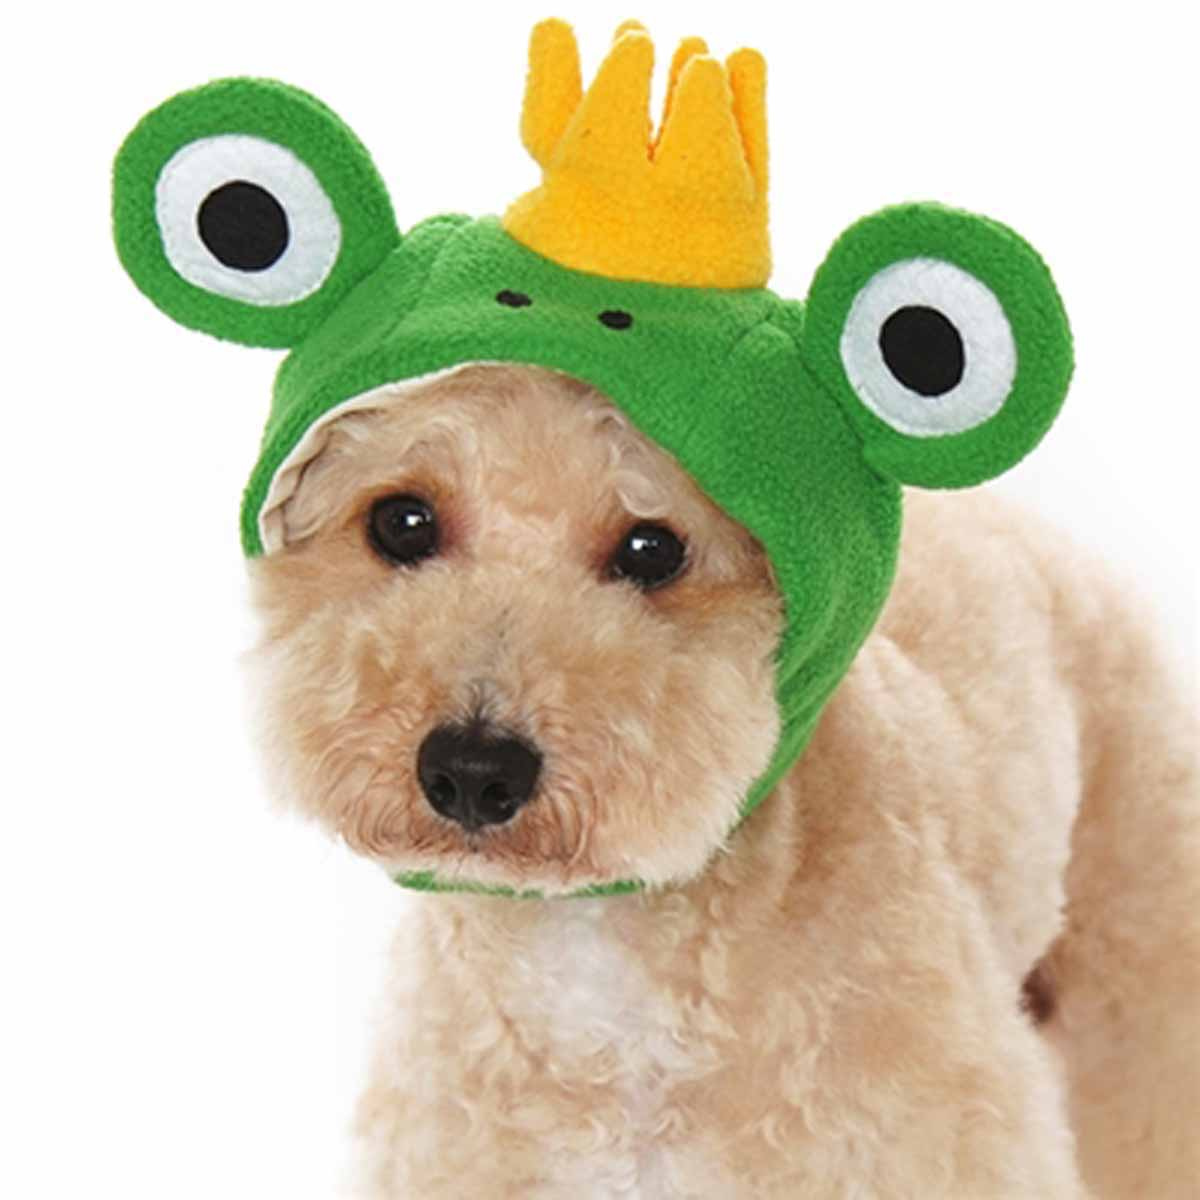 First Prince Frog Dog Hat By Dogo Prince Frog Dog Hat By Dogo Baxterboo Dogs Hats Instagram Dogs Hats Wallpaper bark post Dogs In Hats